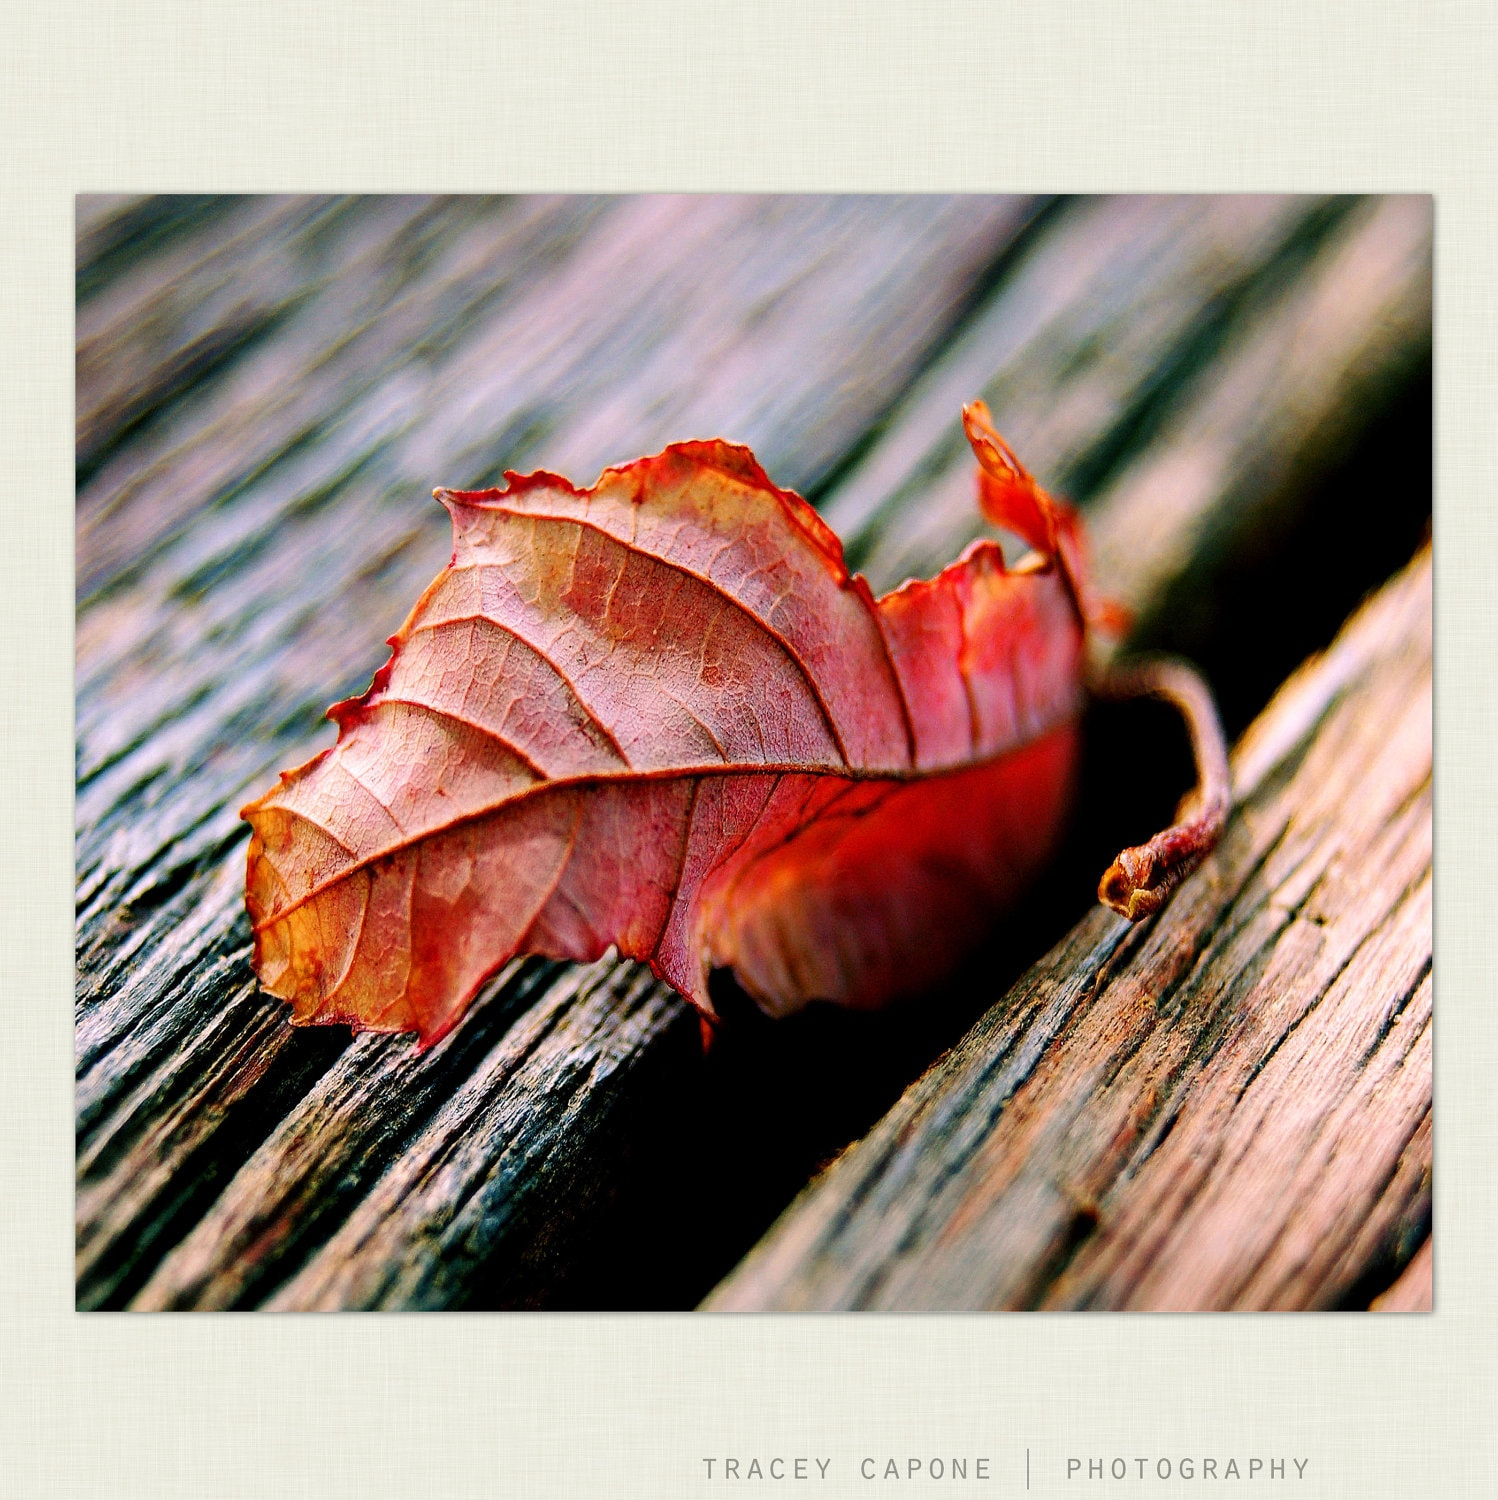 Photography: Autumn Wall Decor, Red Fall Leaf Wall Art - First Leaf of Fall - Autumn photography, fall home decor, crimson red, umber - TraceyCapone